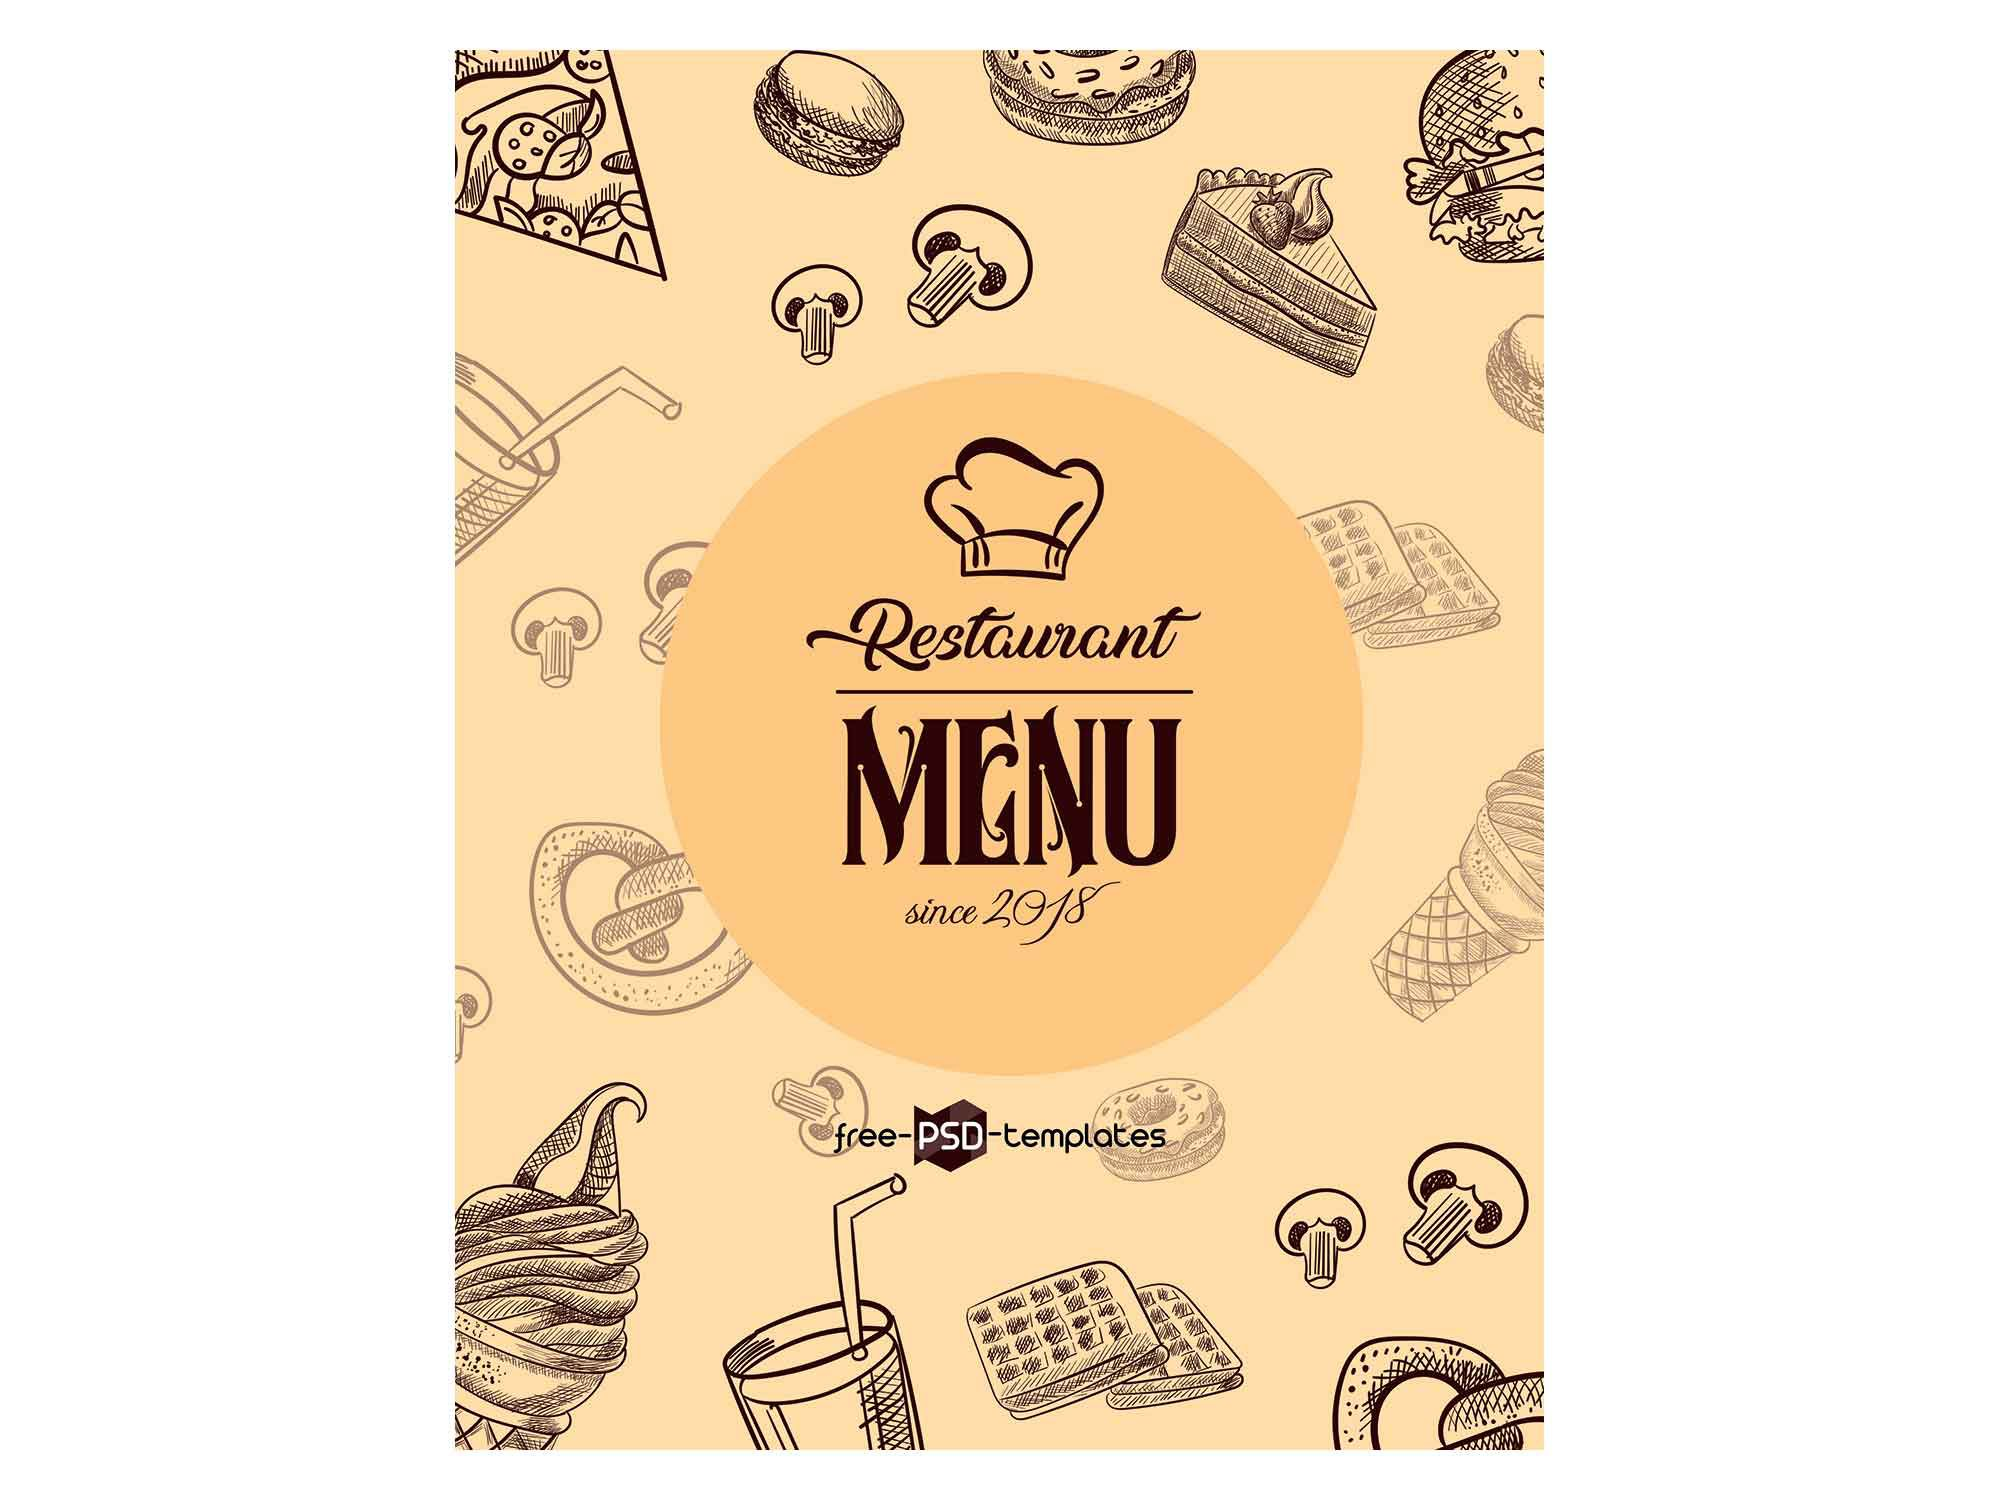 007 Simple Menu Template Free Download For Restaurant Highest Clarity  Word PsdFull